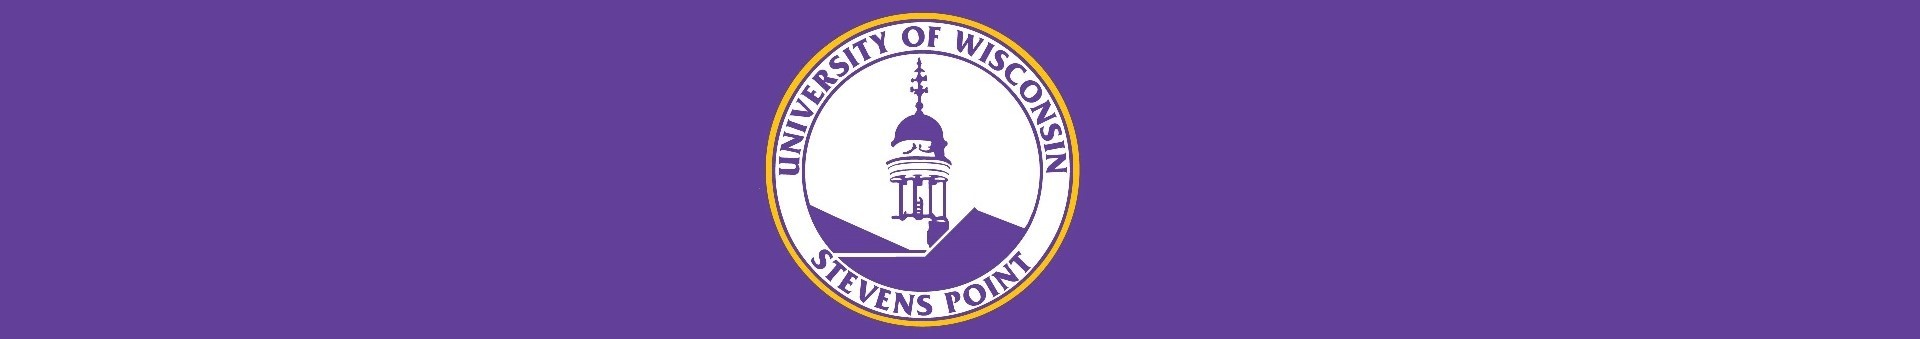 University of Wisconsin-Stevens Point | Ticketing